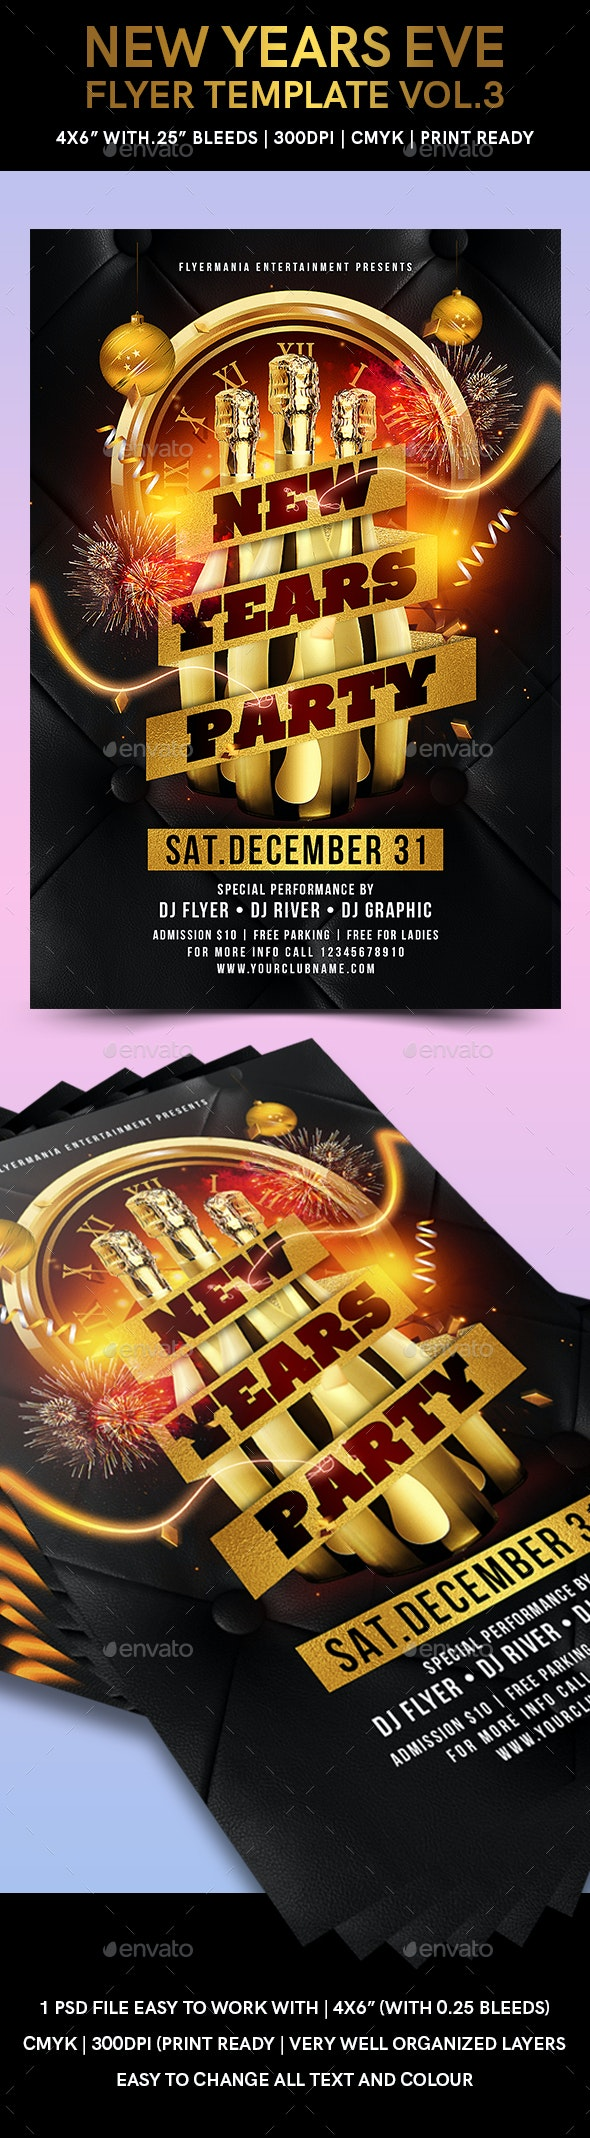 New Years Eve Flyer Template Vol.3 - Events Flyers